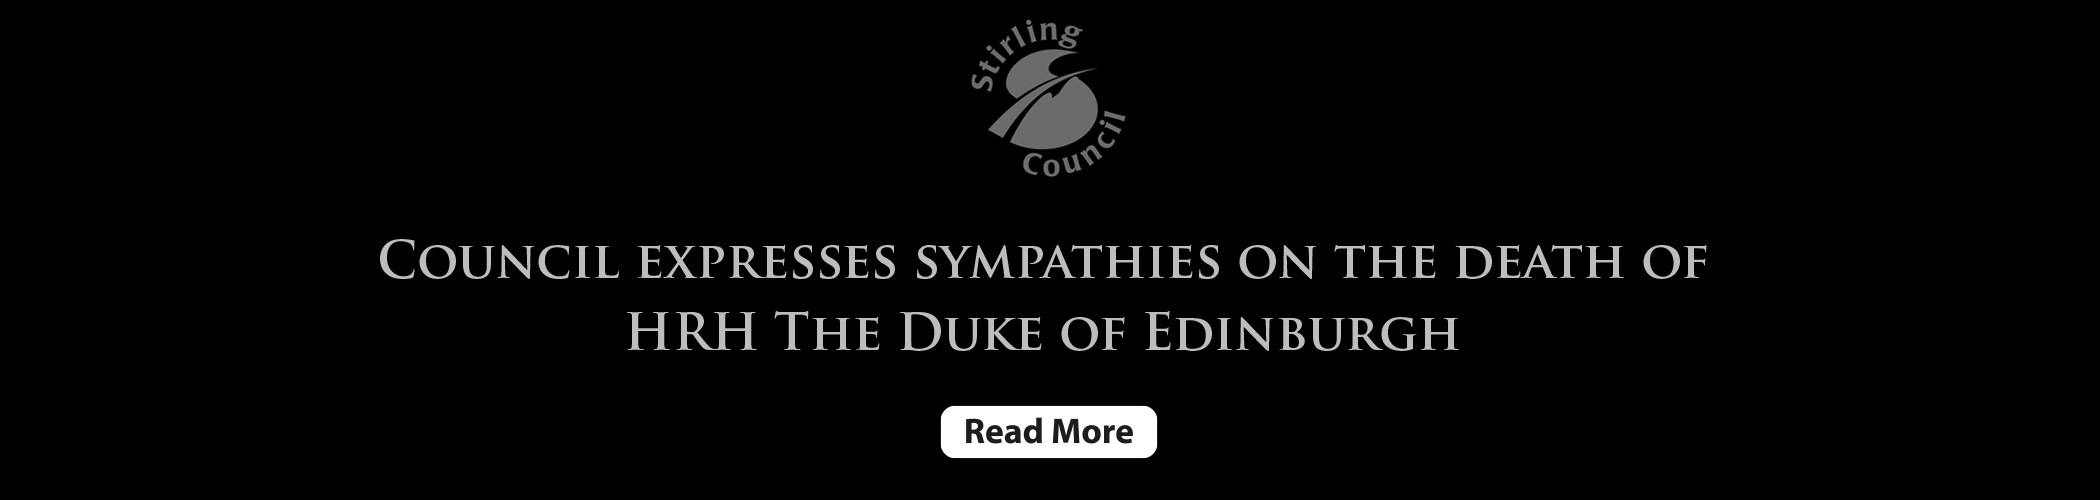 Banner of the Council's reaction to the death of HRH Prince Philip, The Duke of Edinburgh